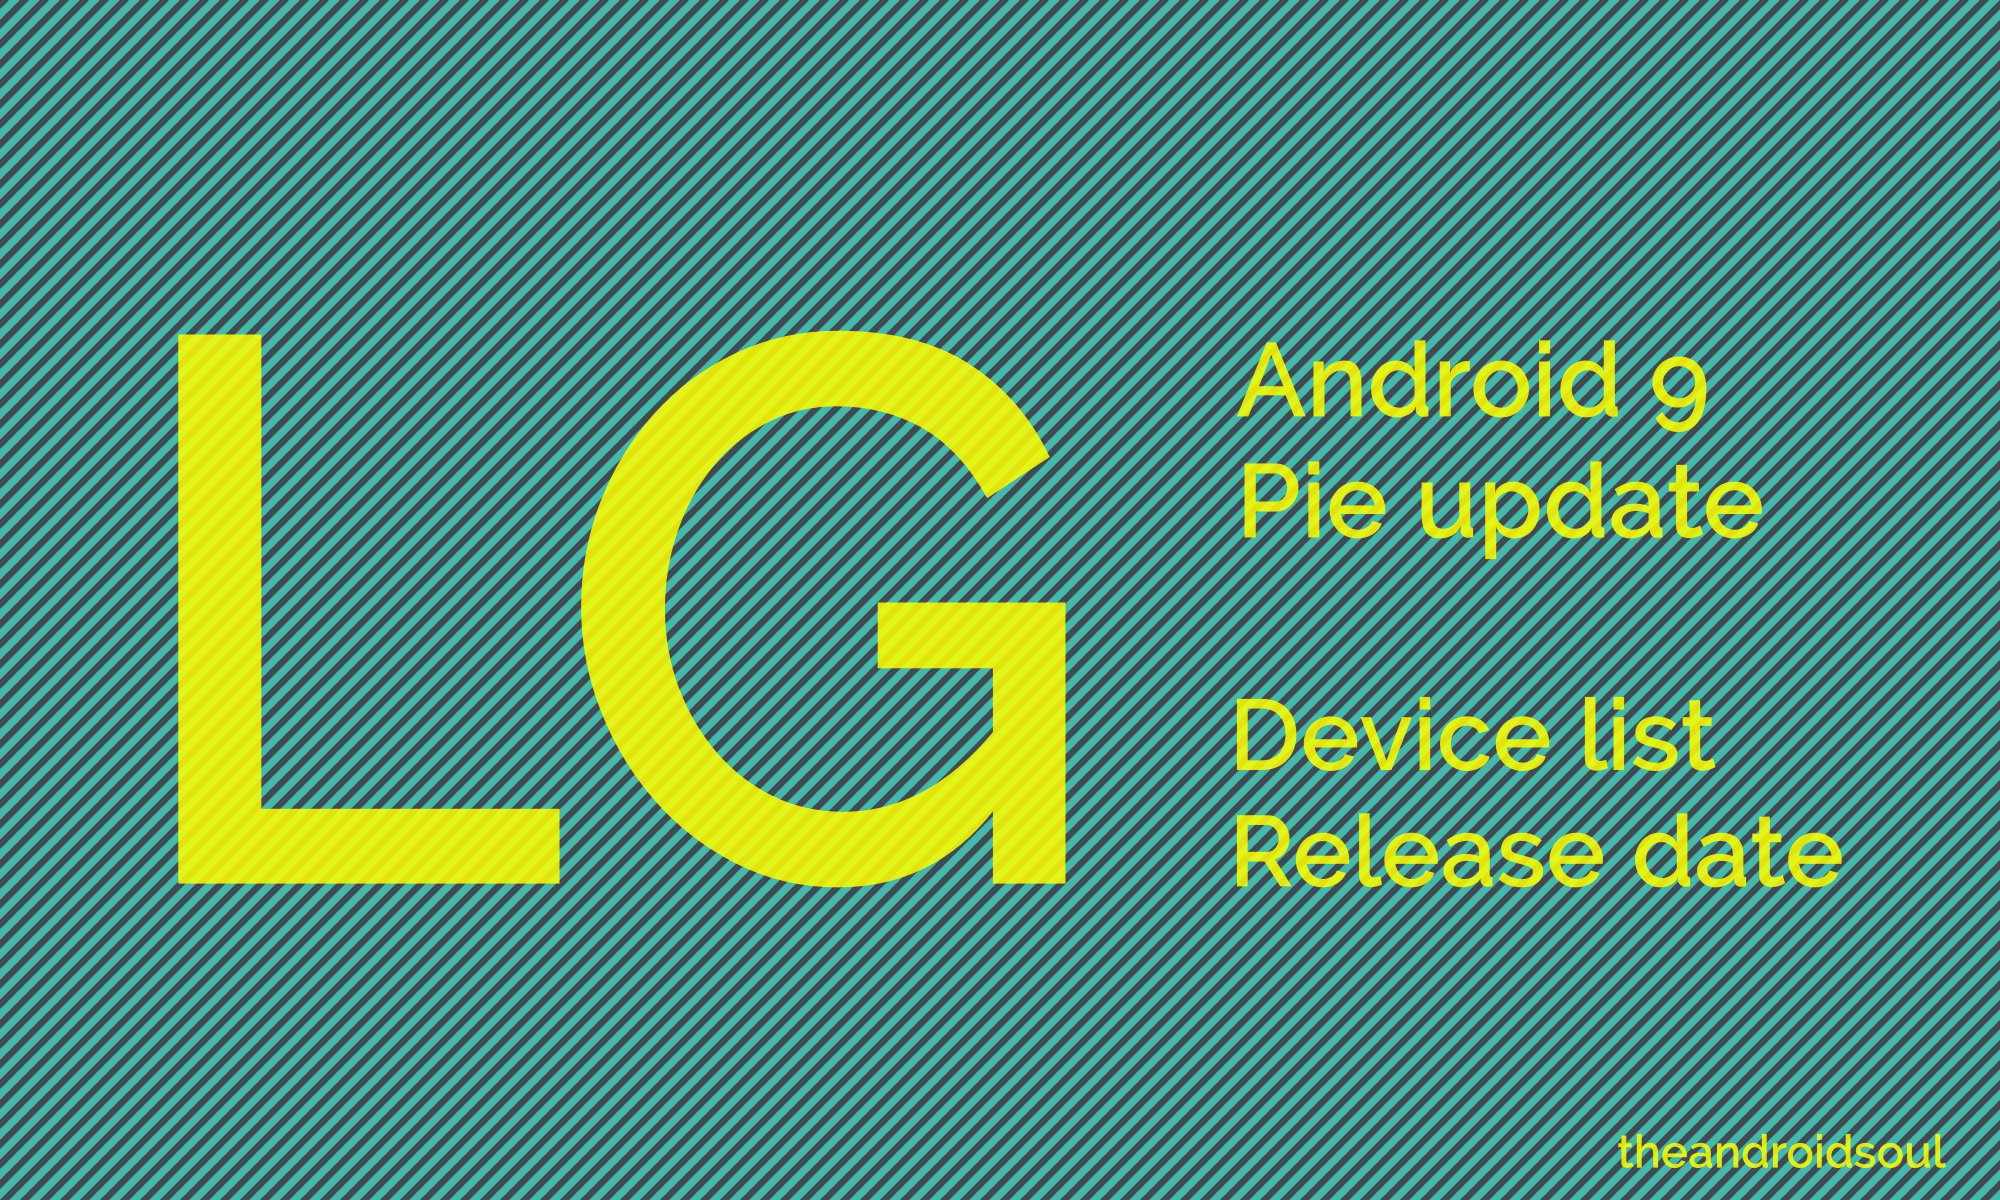 Lg g7 android pie rom | LG's Android Pie update roadmap includes the